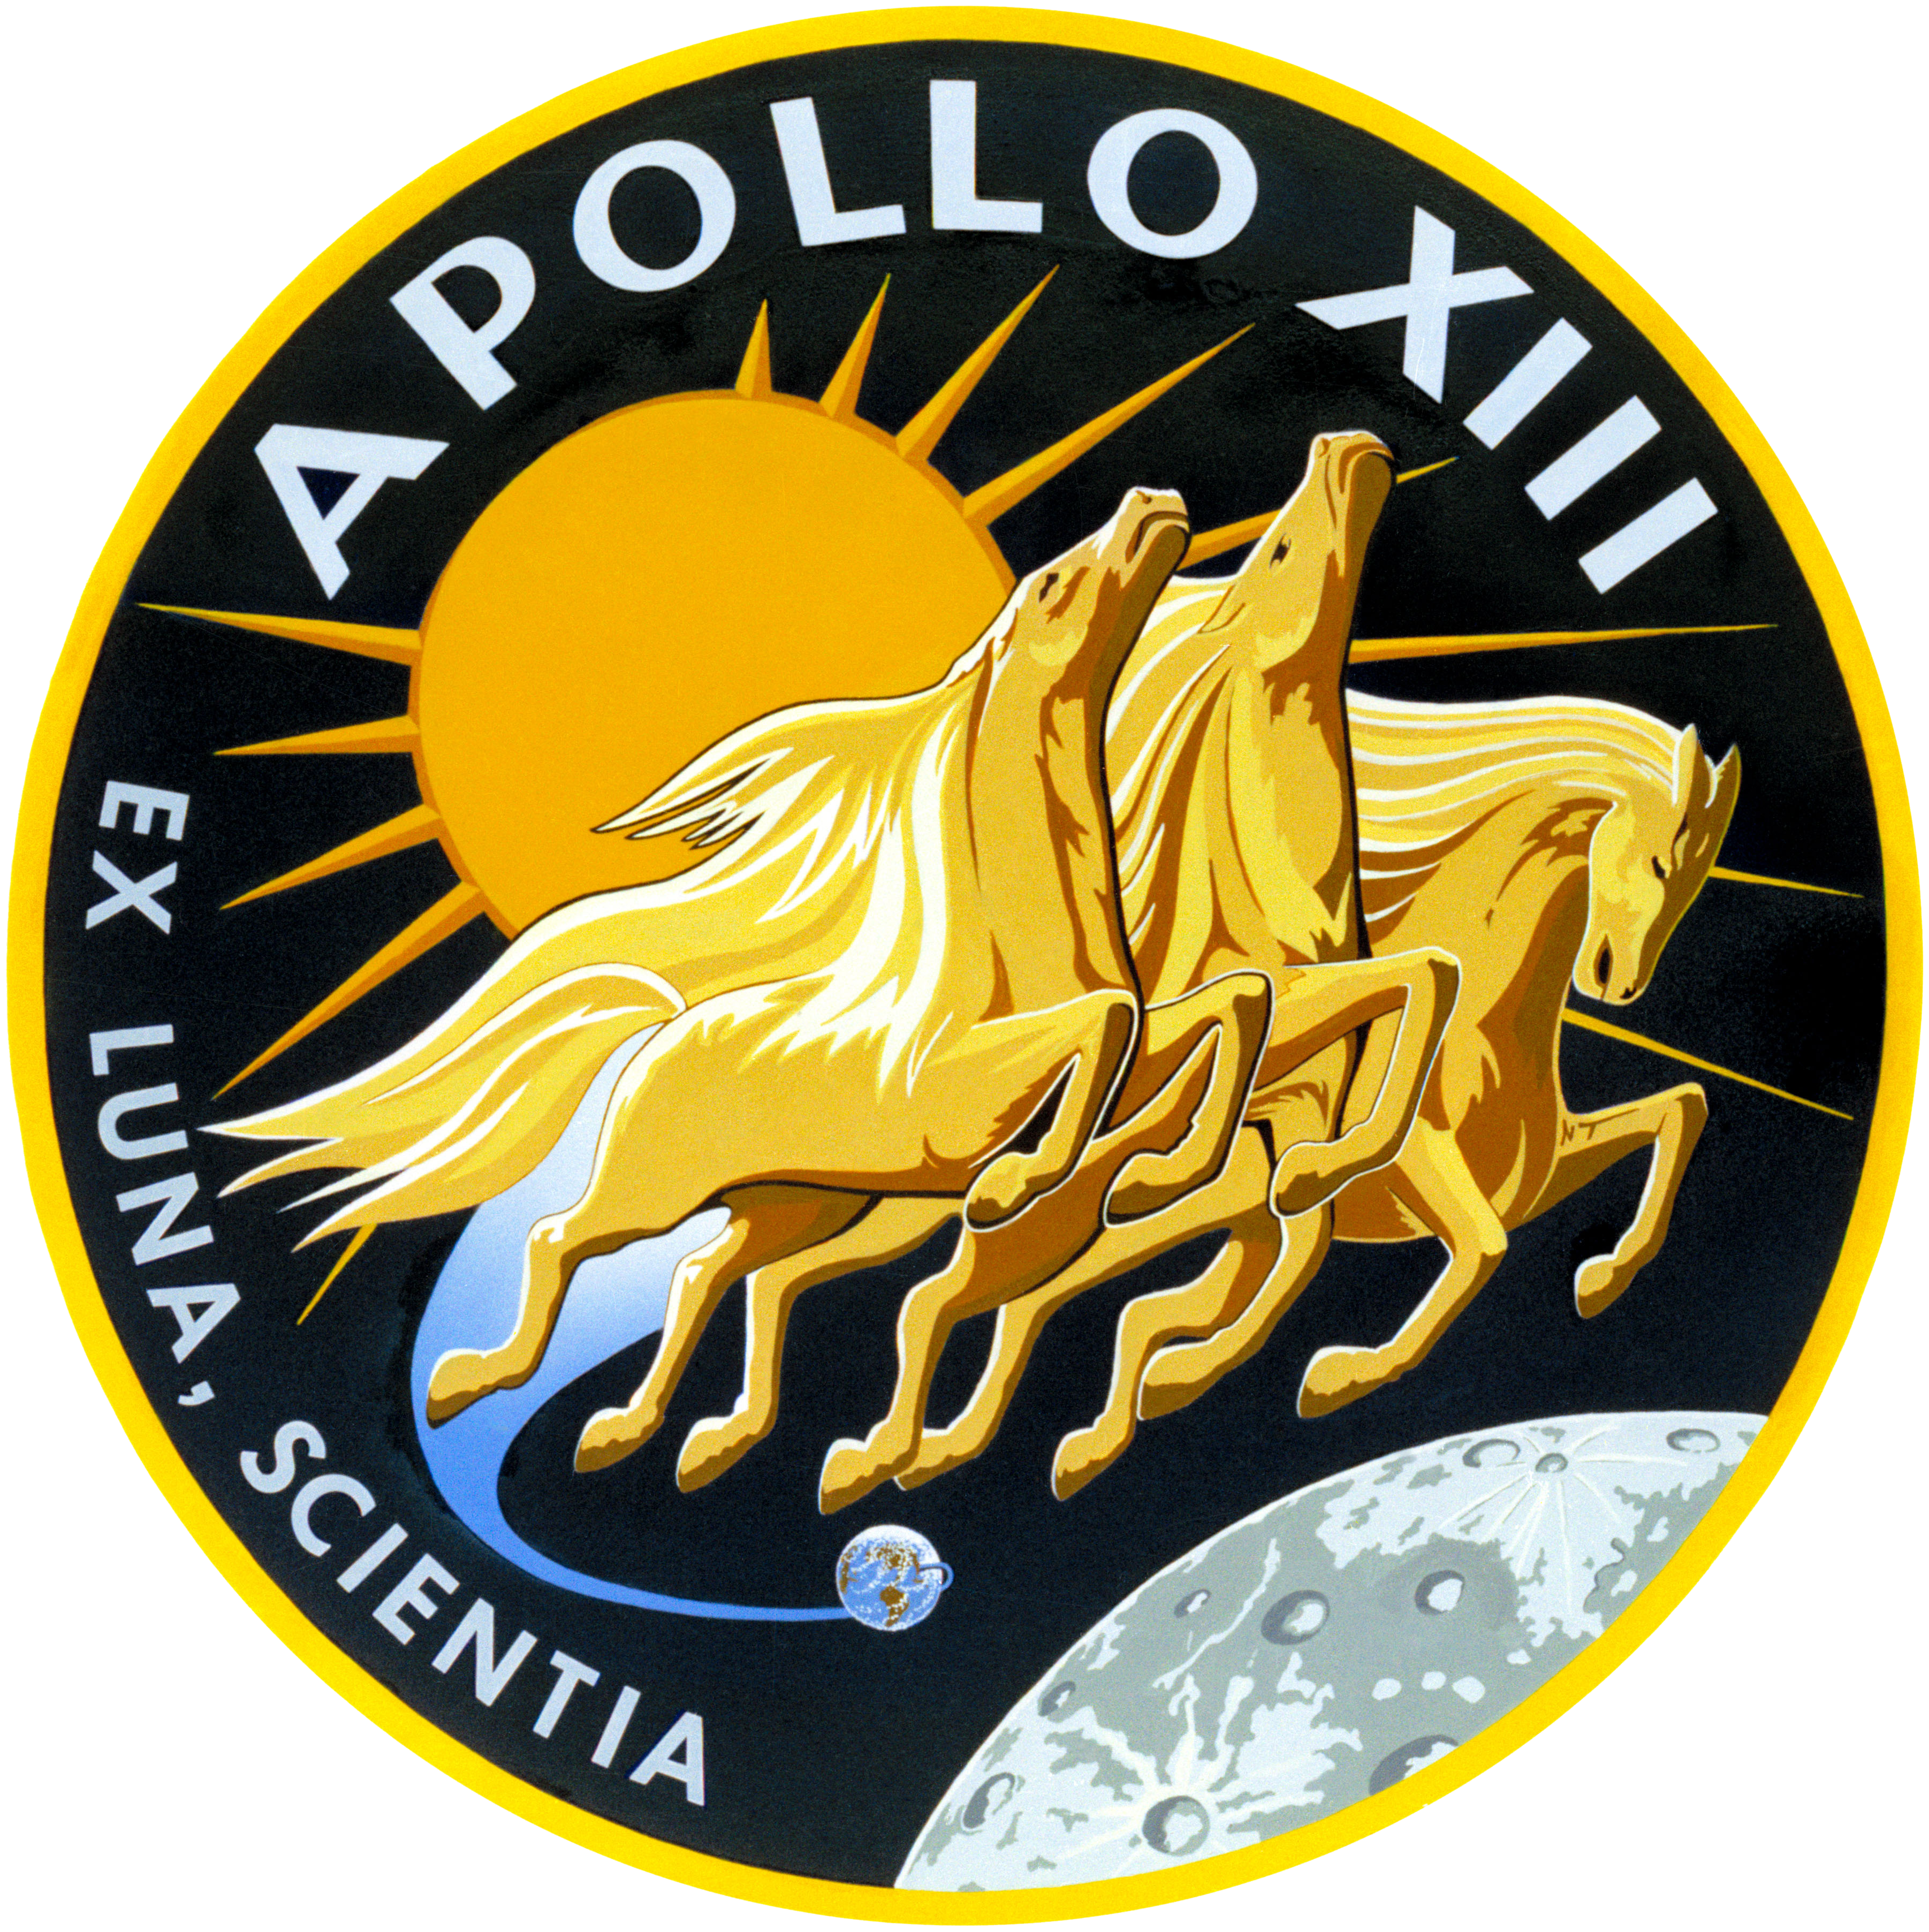 apollo writework logo apollo 13 15061489151214971514 14921500149314901493 15131500 14881508149315001493 13 polski logo misji apollo 13 portuguecircs